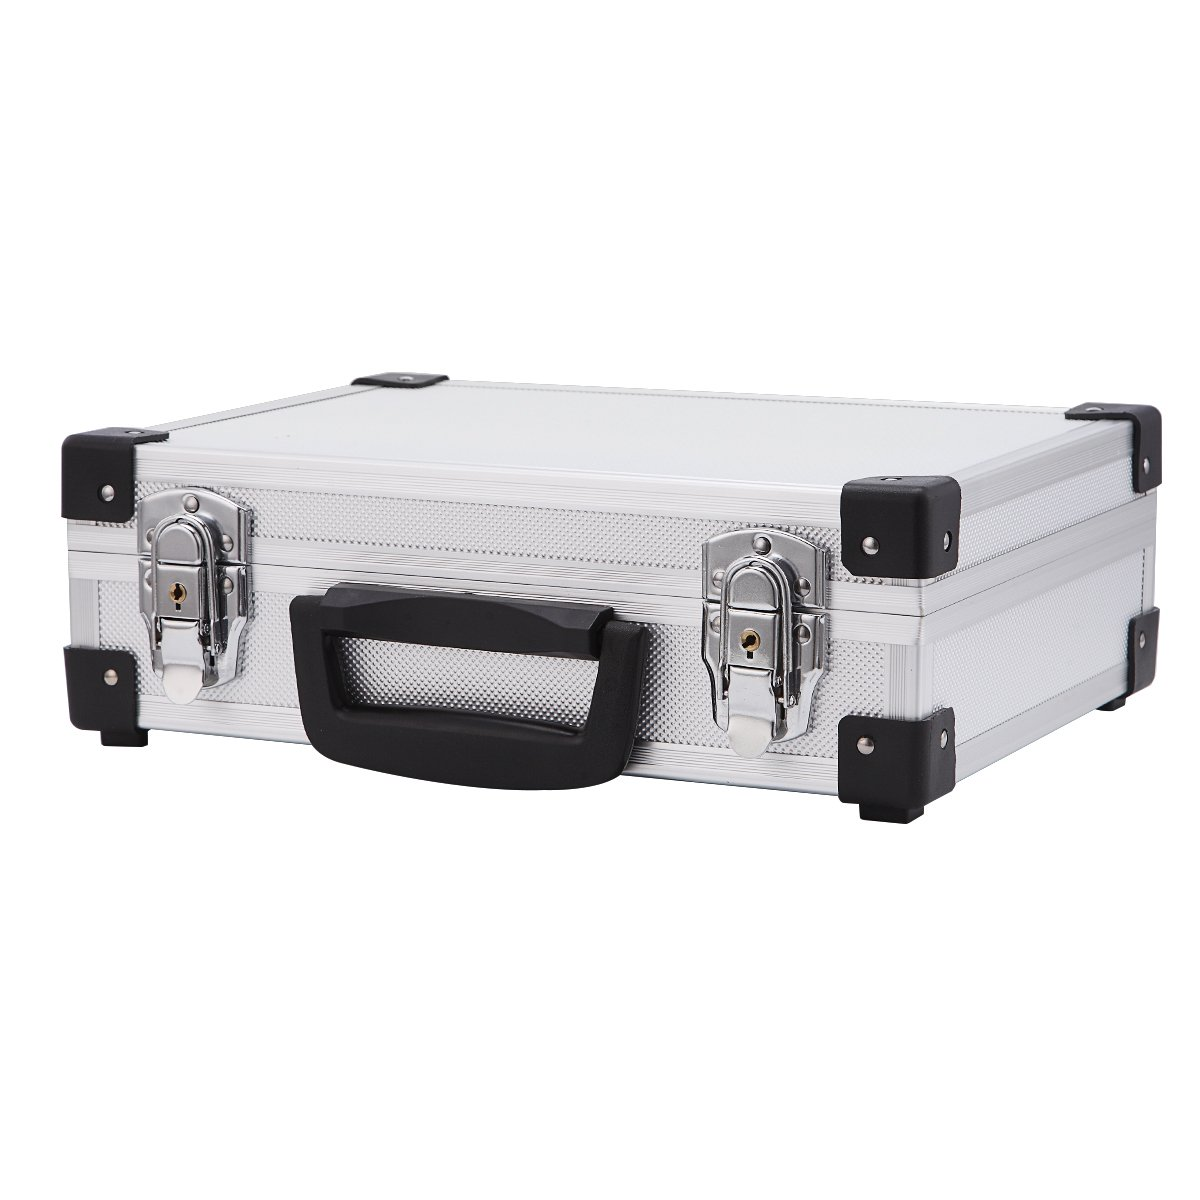 Professional Aluminum Hard Hand Gun Cases Office File Briefcase Outdoor Travel Flight Cases Home Tool Boxes with Quick Locks by ALUBOX (Image #5)